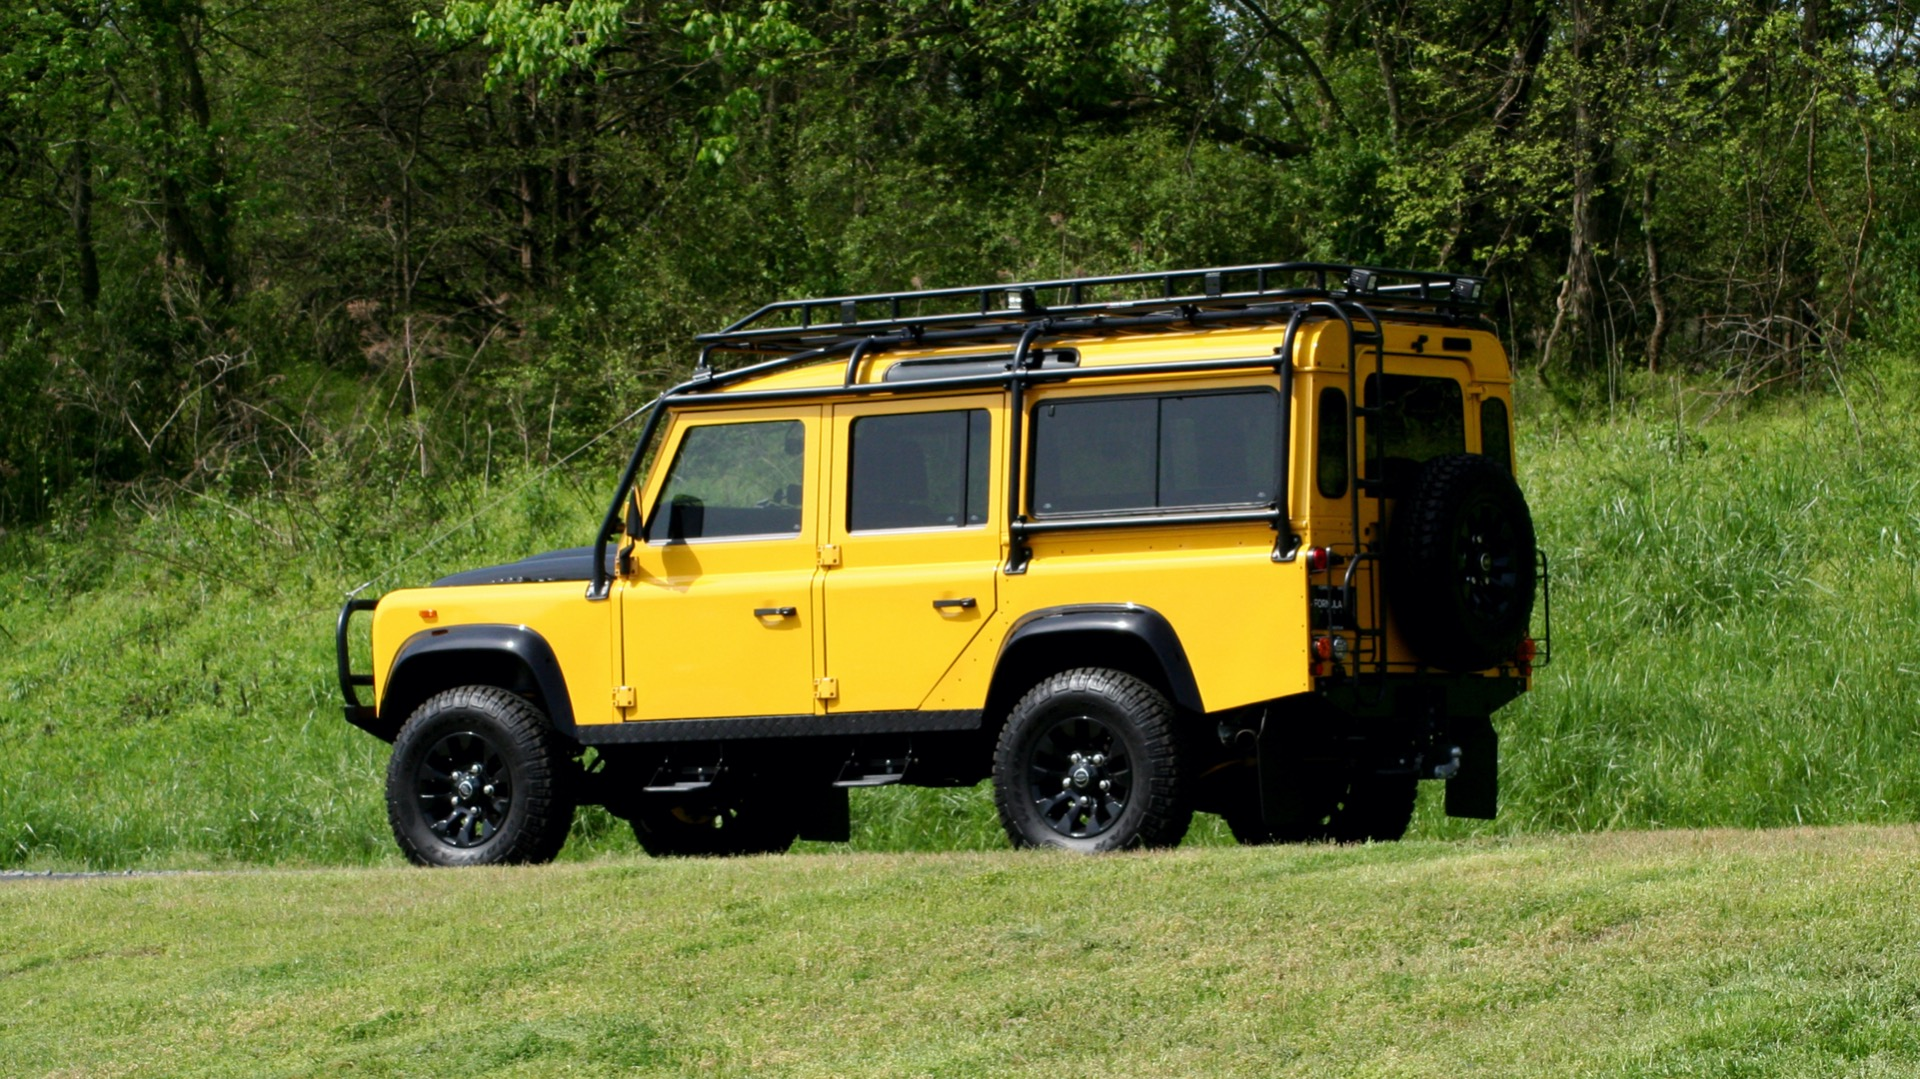 Used 1989 Land Rover Defender 110 4x4 Custom / Fully Restored / Fuel Injected V8 / 5-Spd Man for sale $60,000 at Formula Imports in Charlotte NC 28227 5